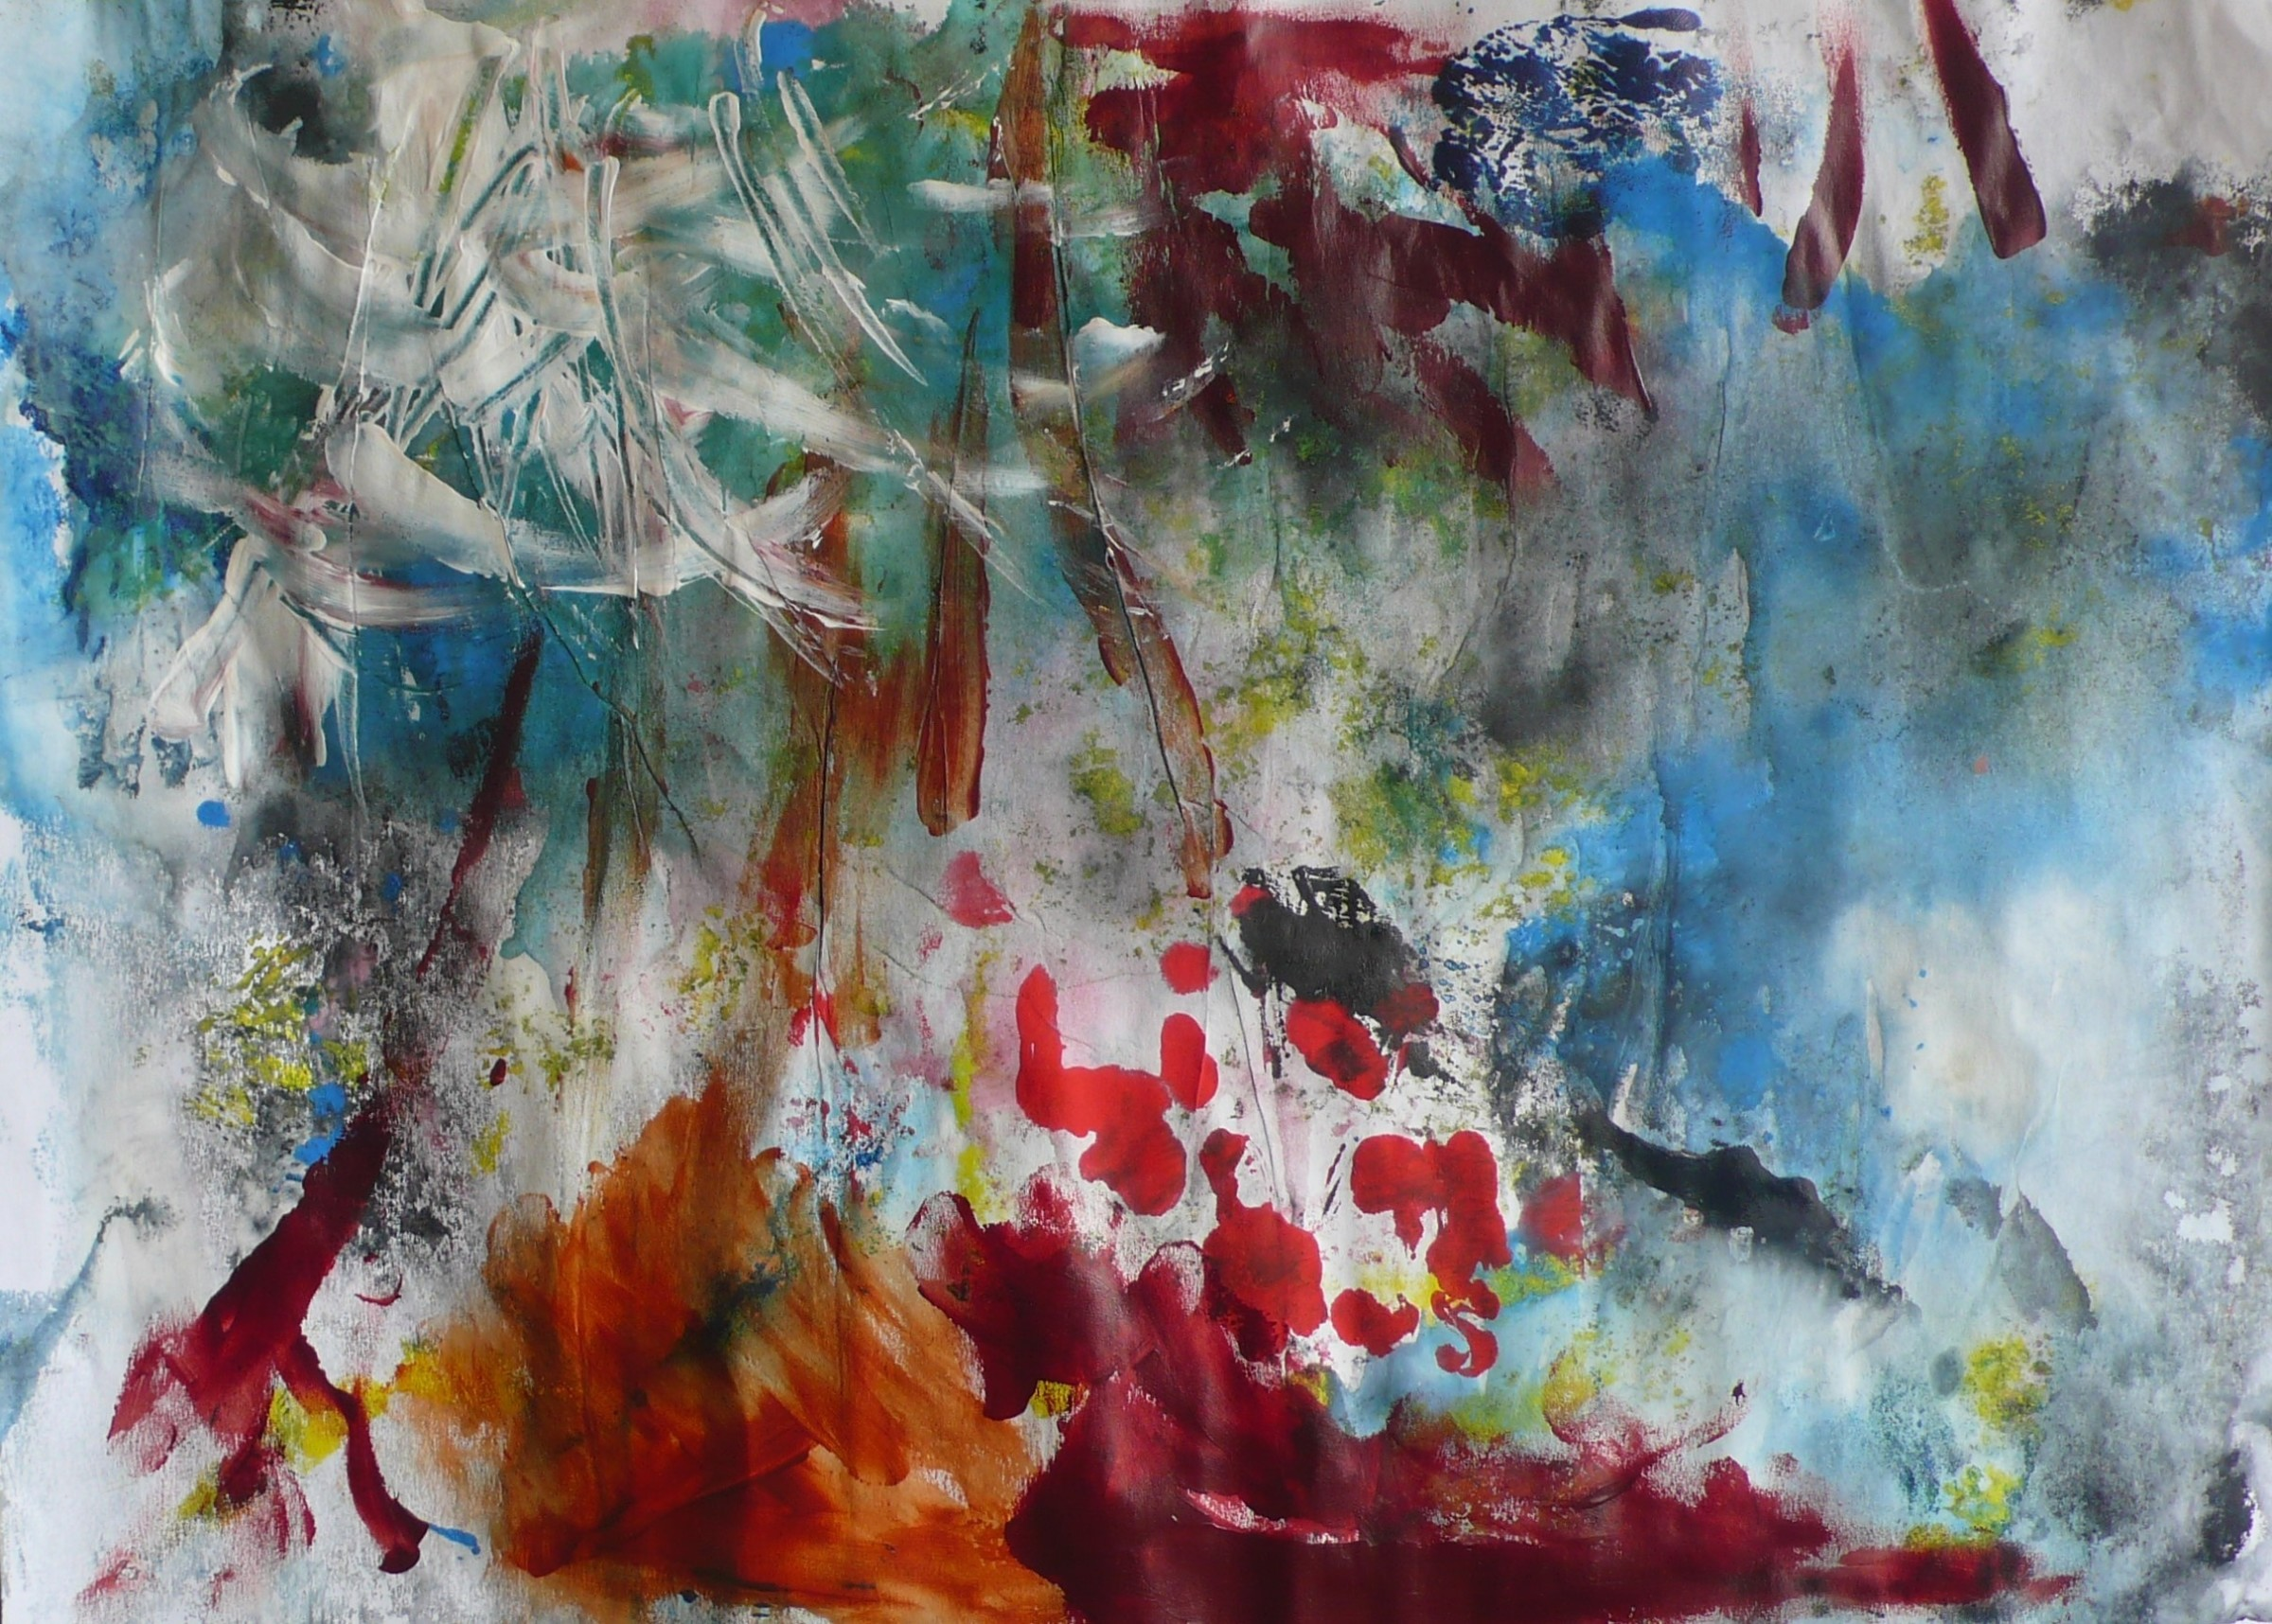 """<span class=""""link fancybox-details-link""""><a href=""""/exhibitions/17/works/image_standalone721/"""">View Detail Page</a></span><p><strong>Eliza John</strong></p><p>Untitled</p><p>oil monoprint, 1/1</p><p>50 x 60cm</p><p>£700 framed</p>"""